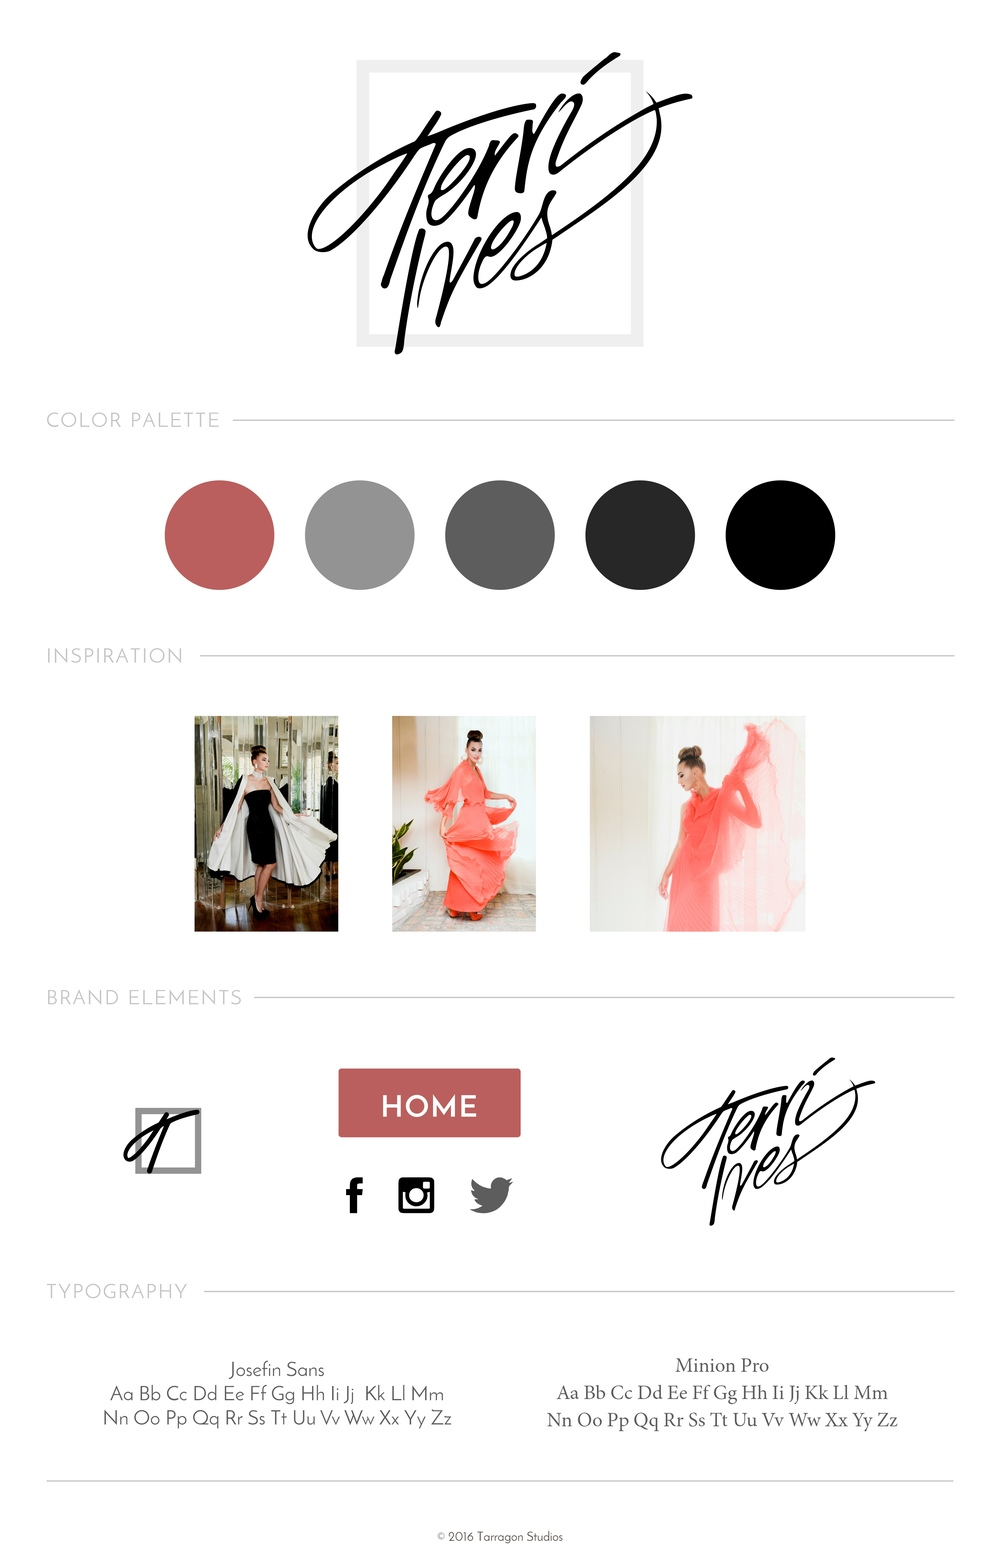 website design style guide couture fashion Terri Ives couture